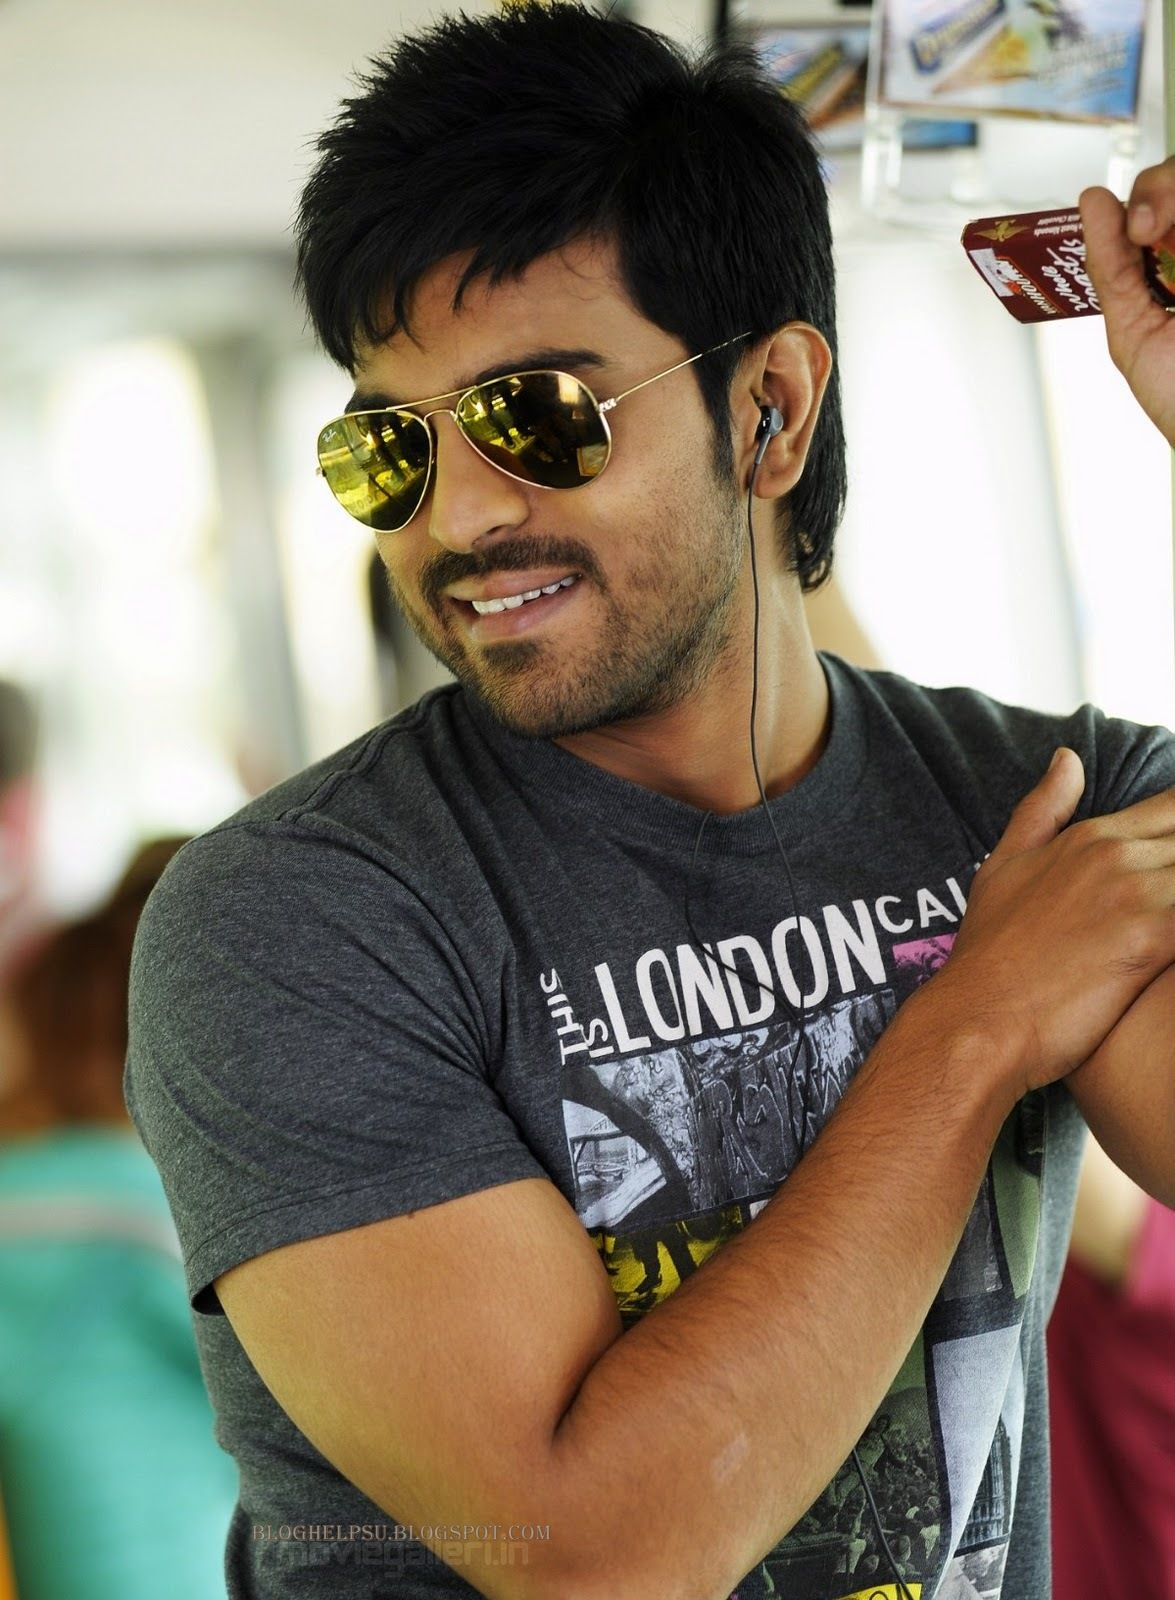 ram charan | bollywood | photo wallpaper, hd photos, god